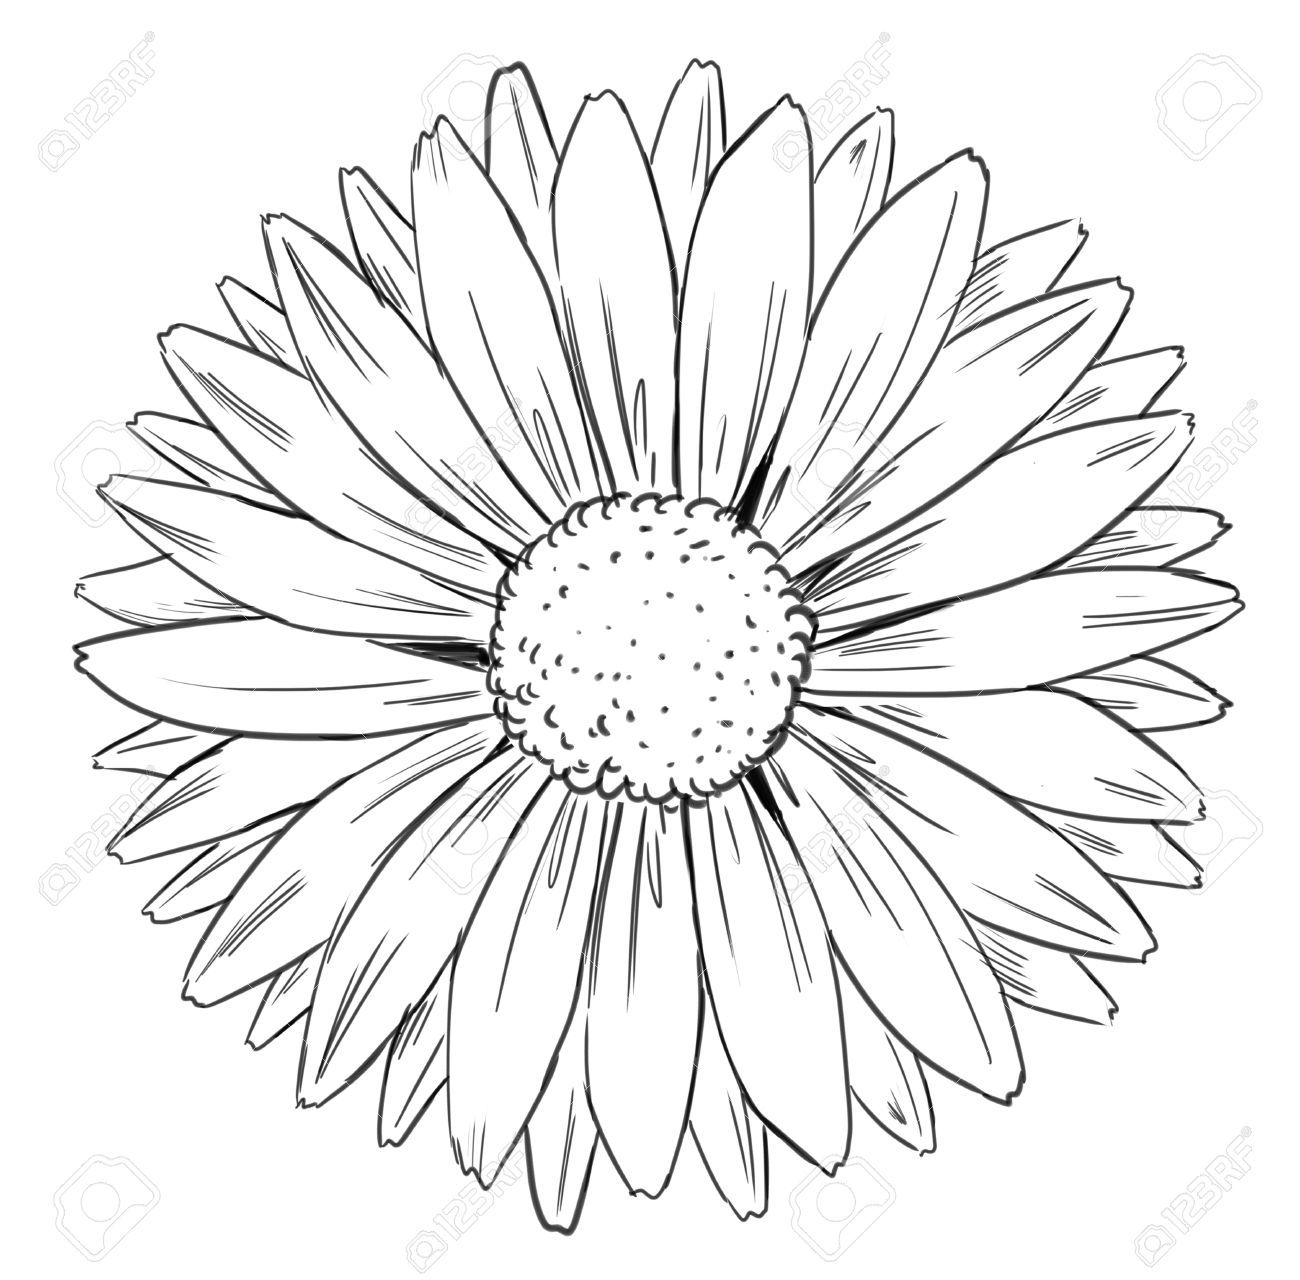 Sunflower Flower Essay